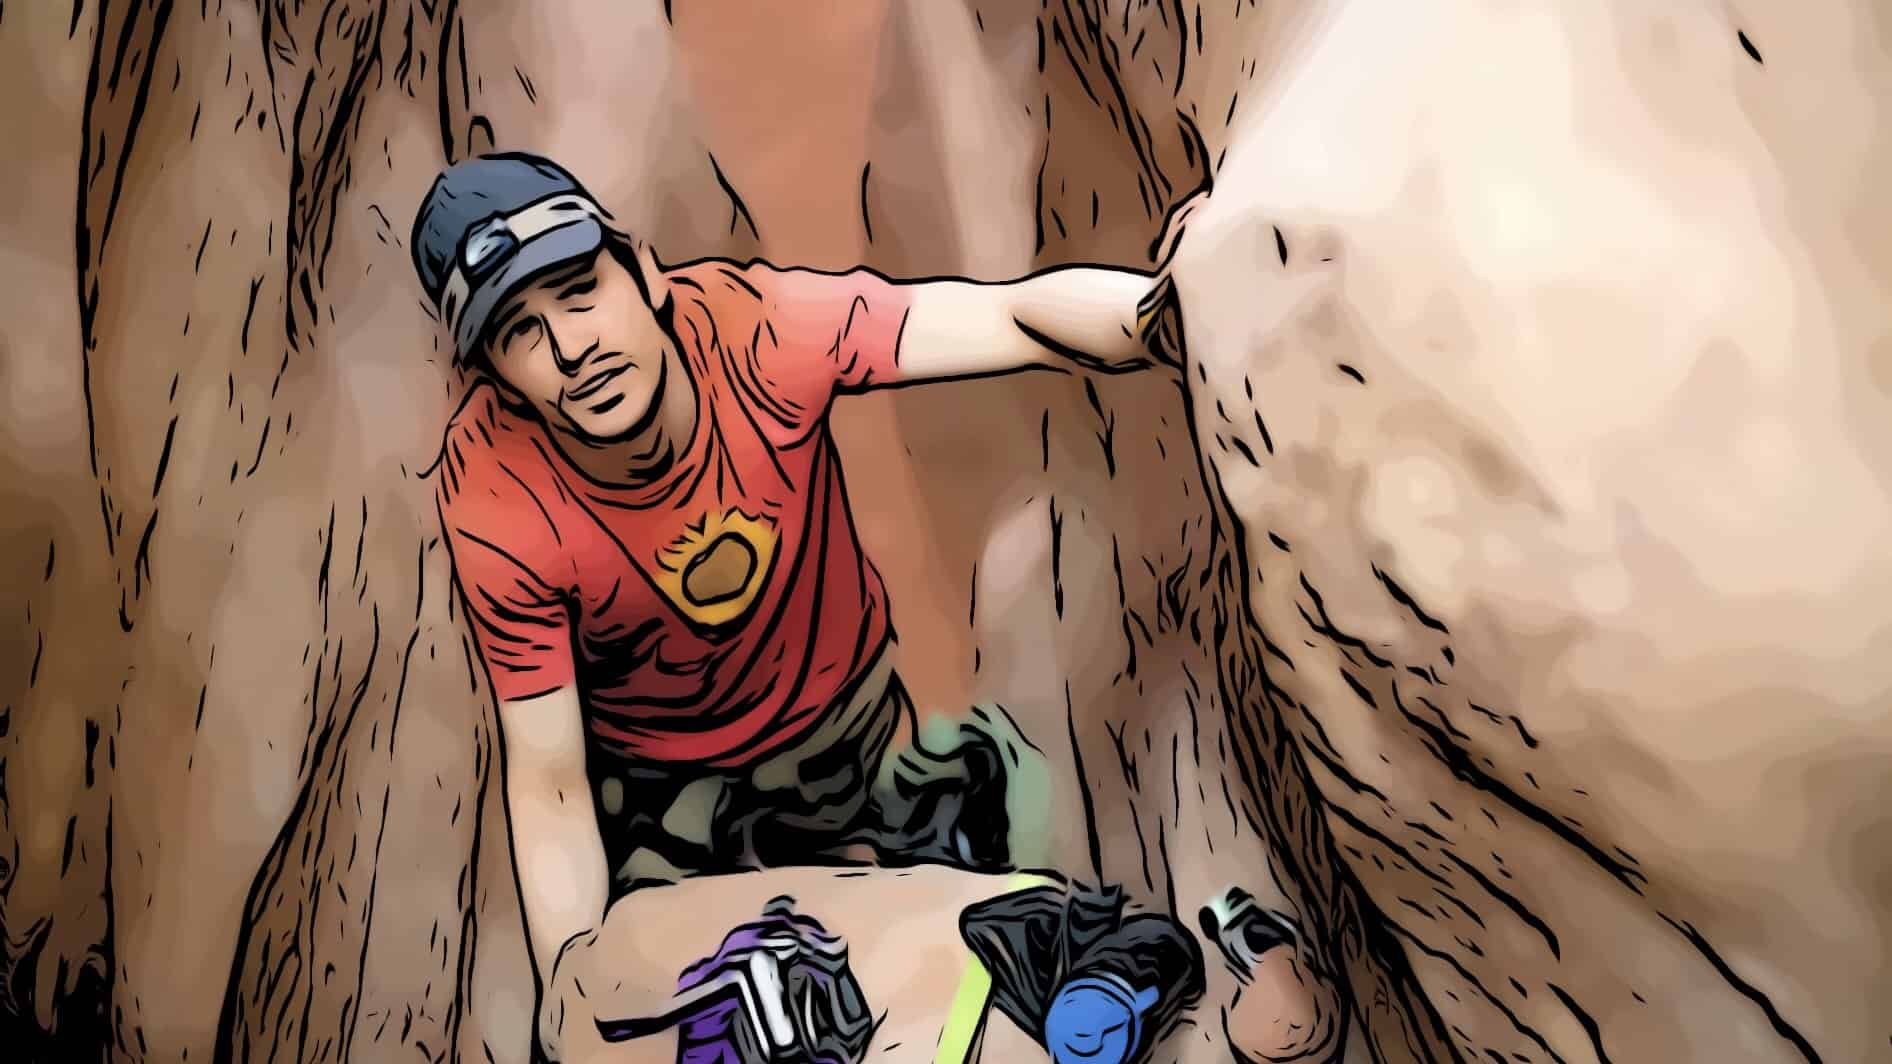 James Franco in 127 Hours stuck under boulder for movies based on true stories post.